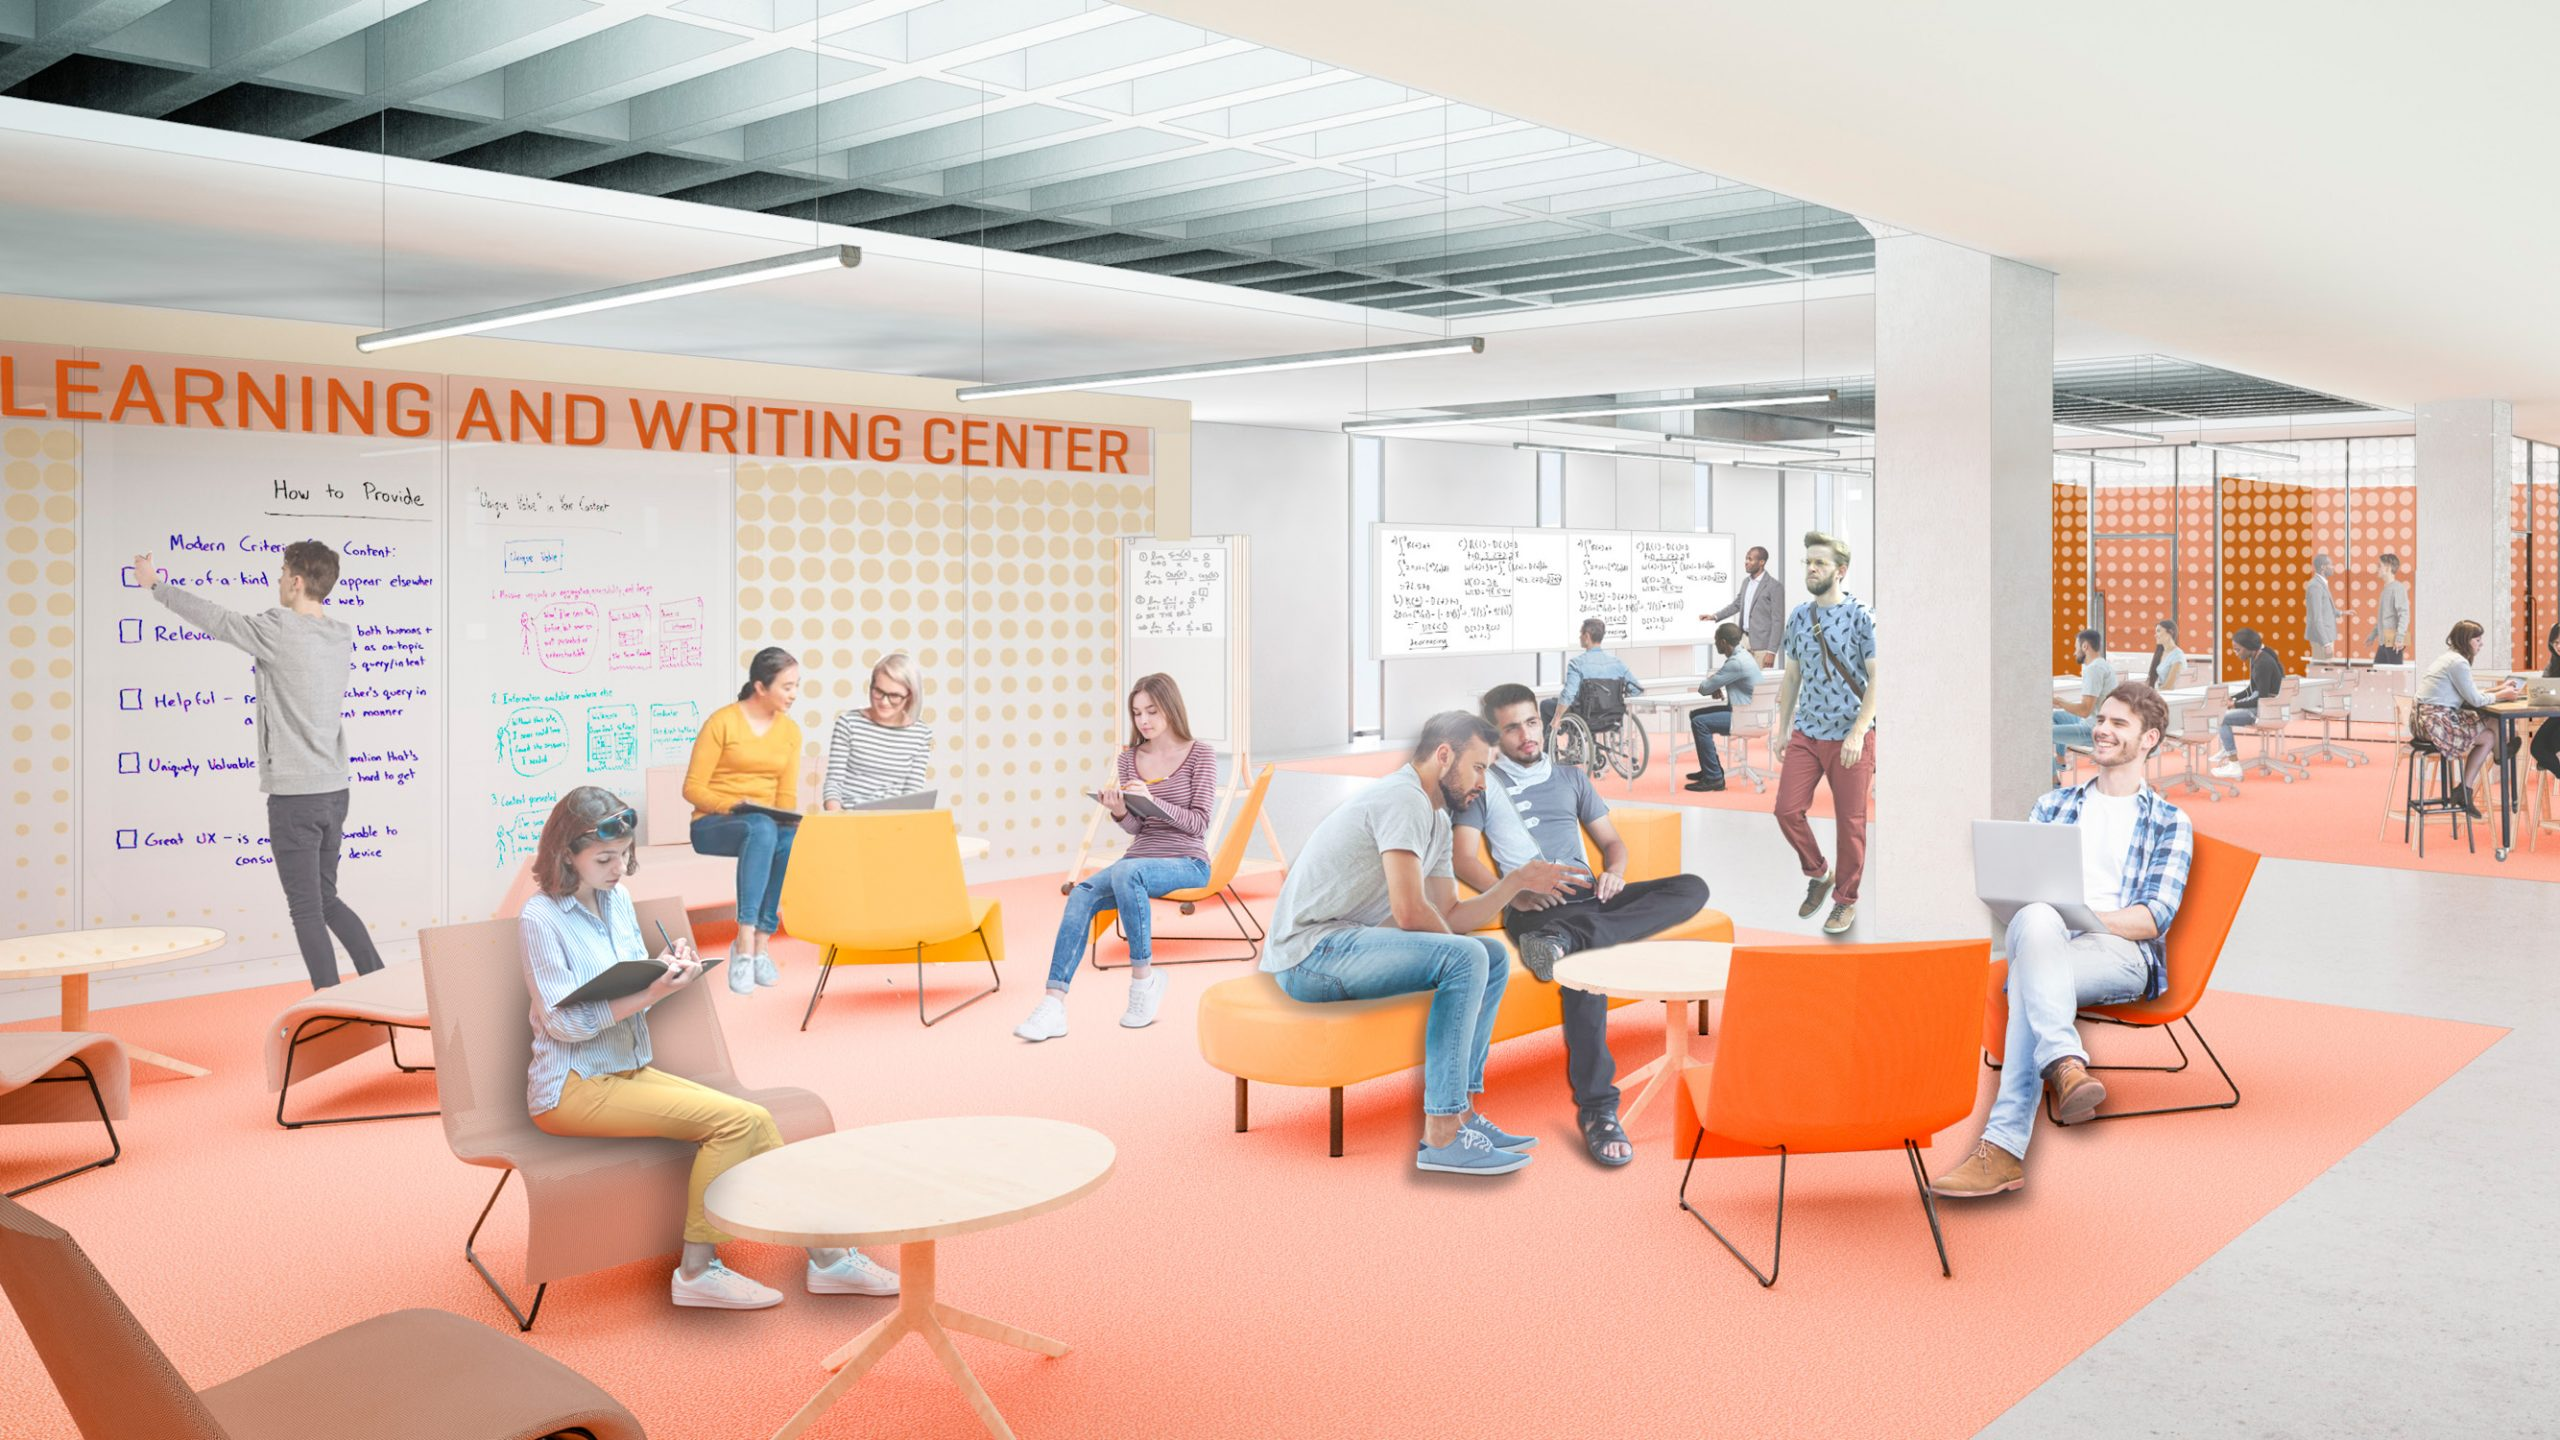 A new hub for learning at the heart of campus